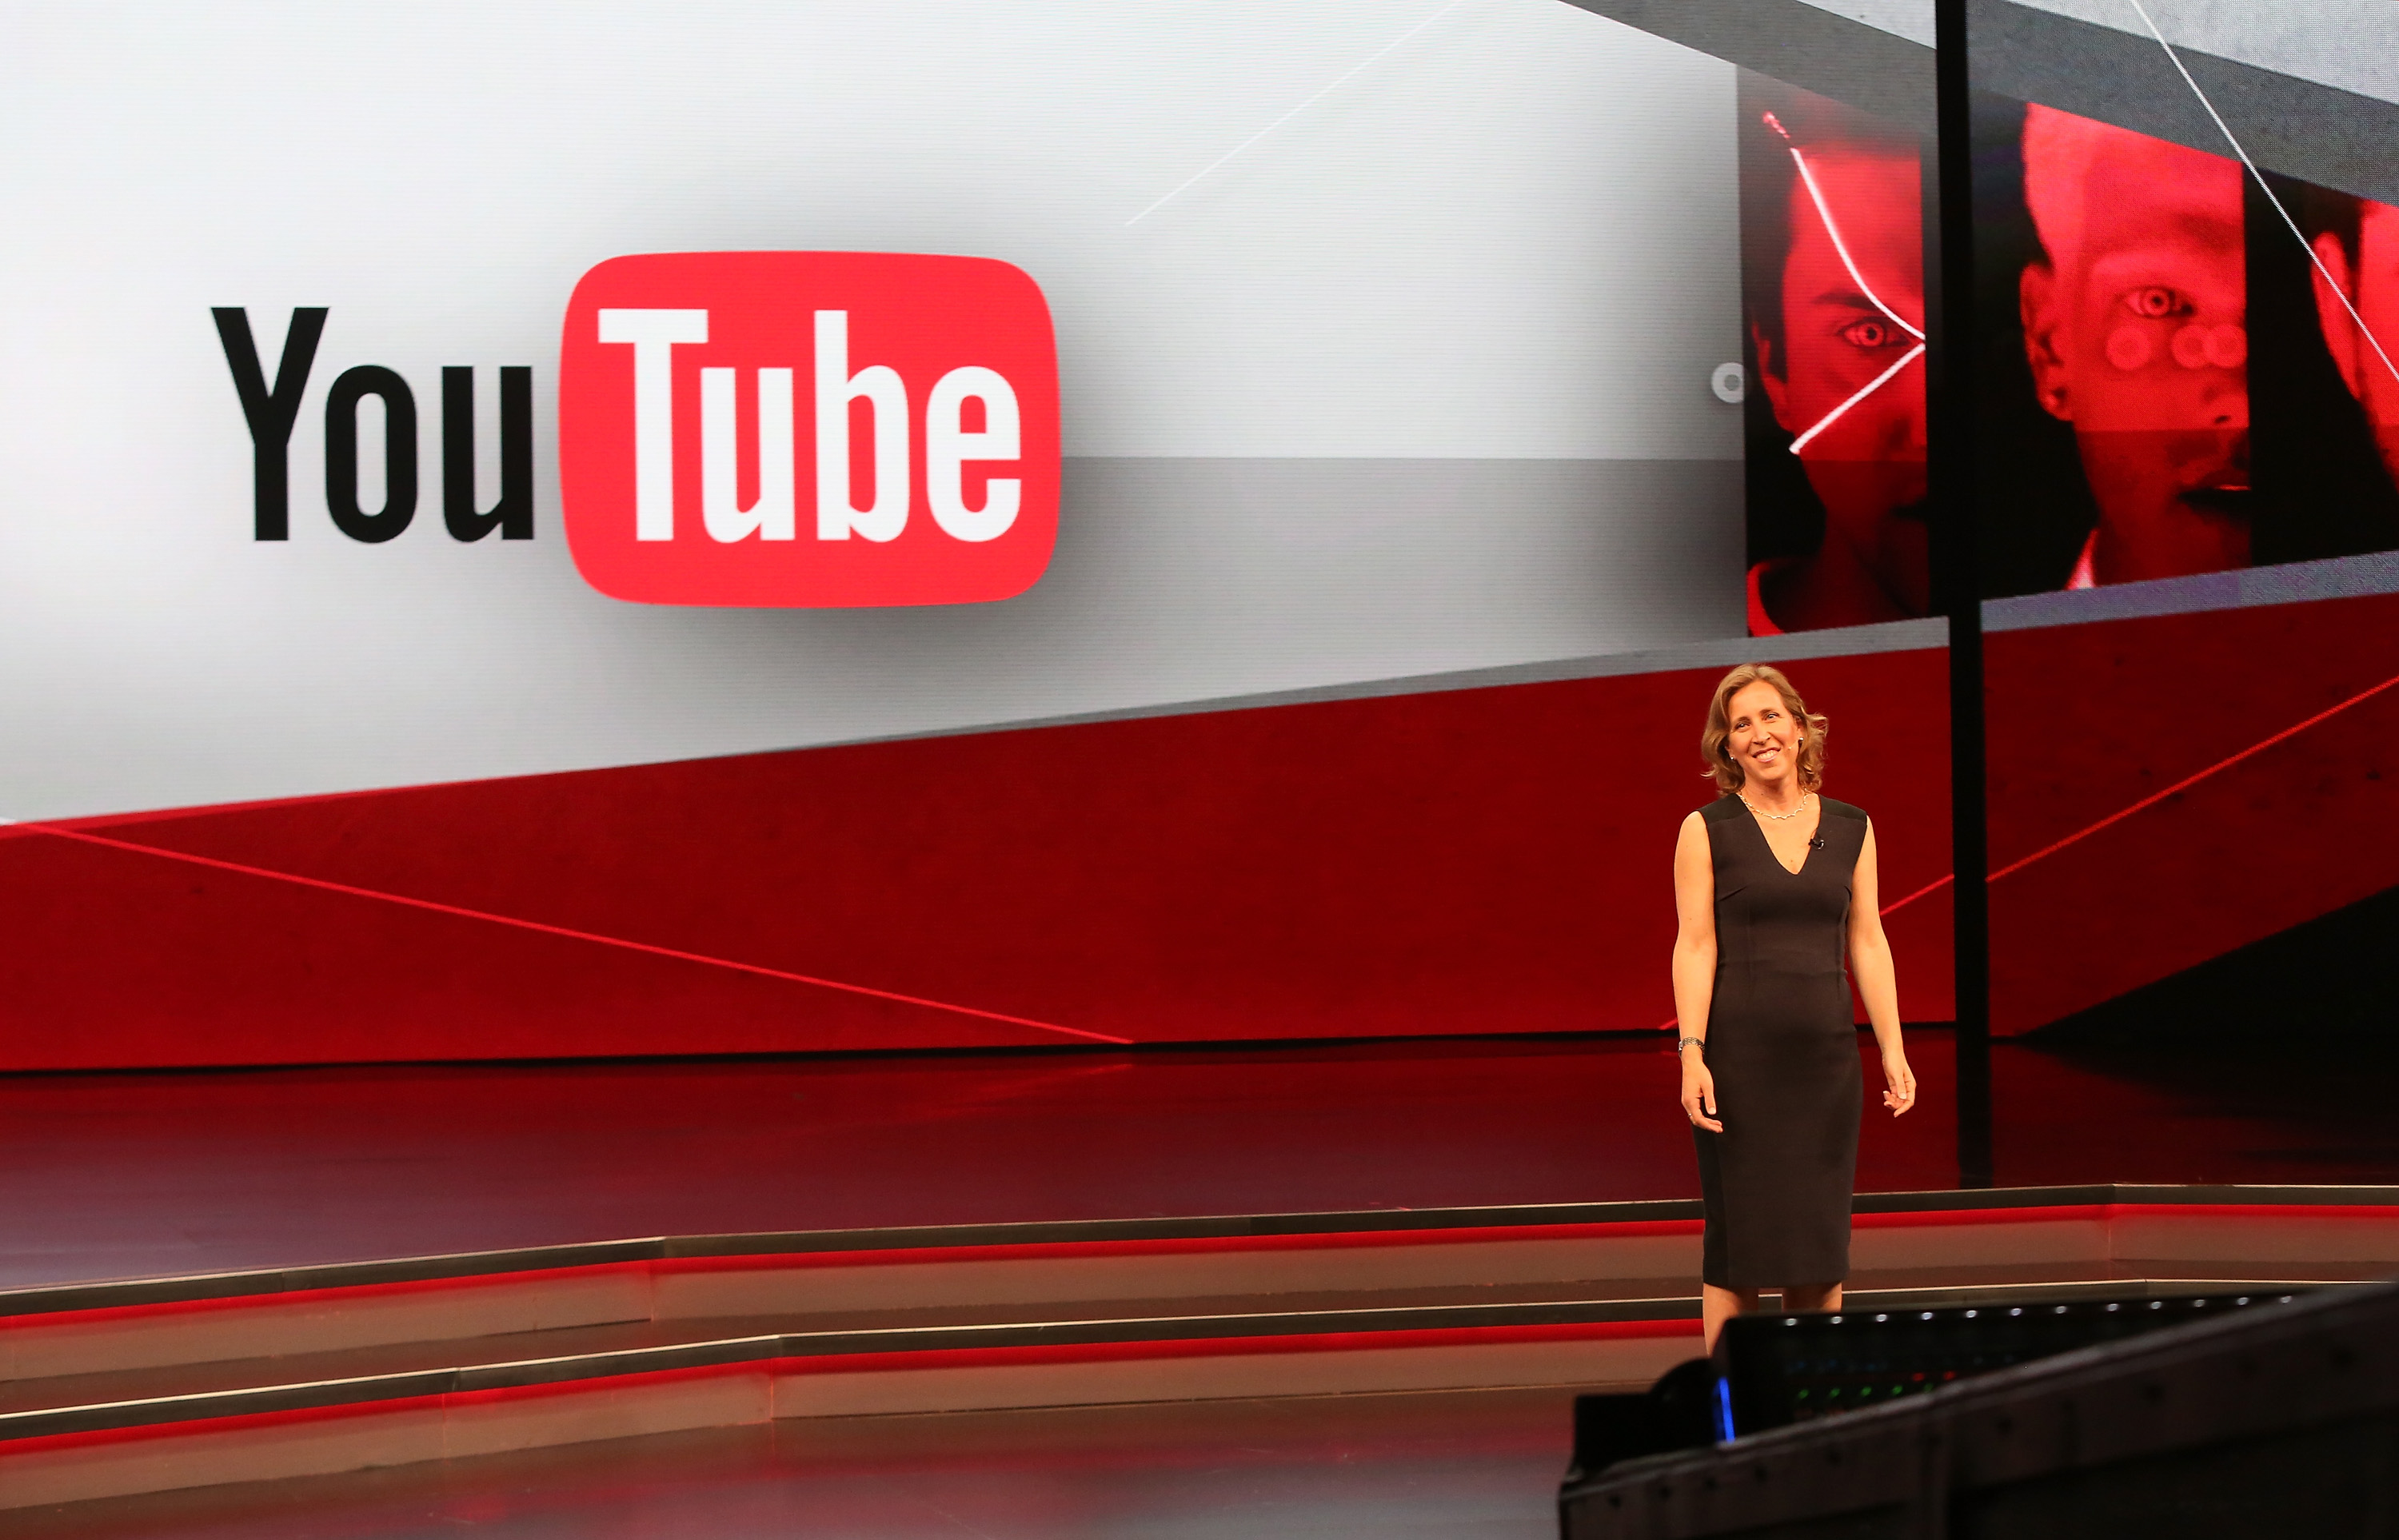 No one knows how YouTube's Trending section works